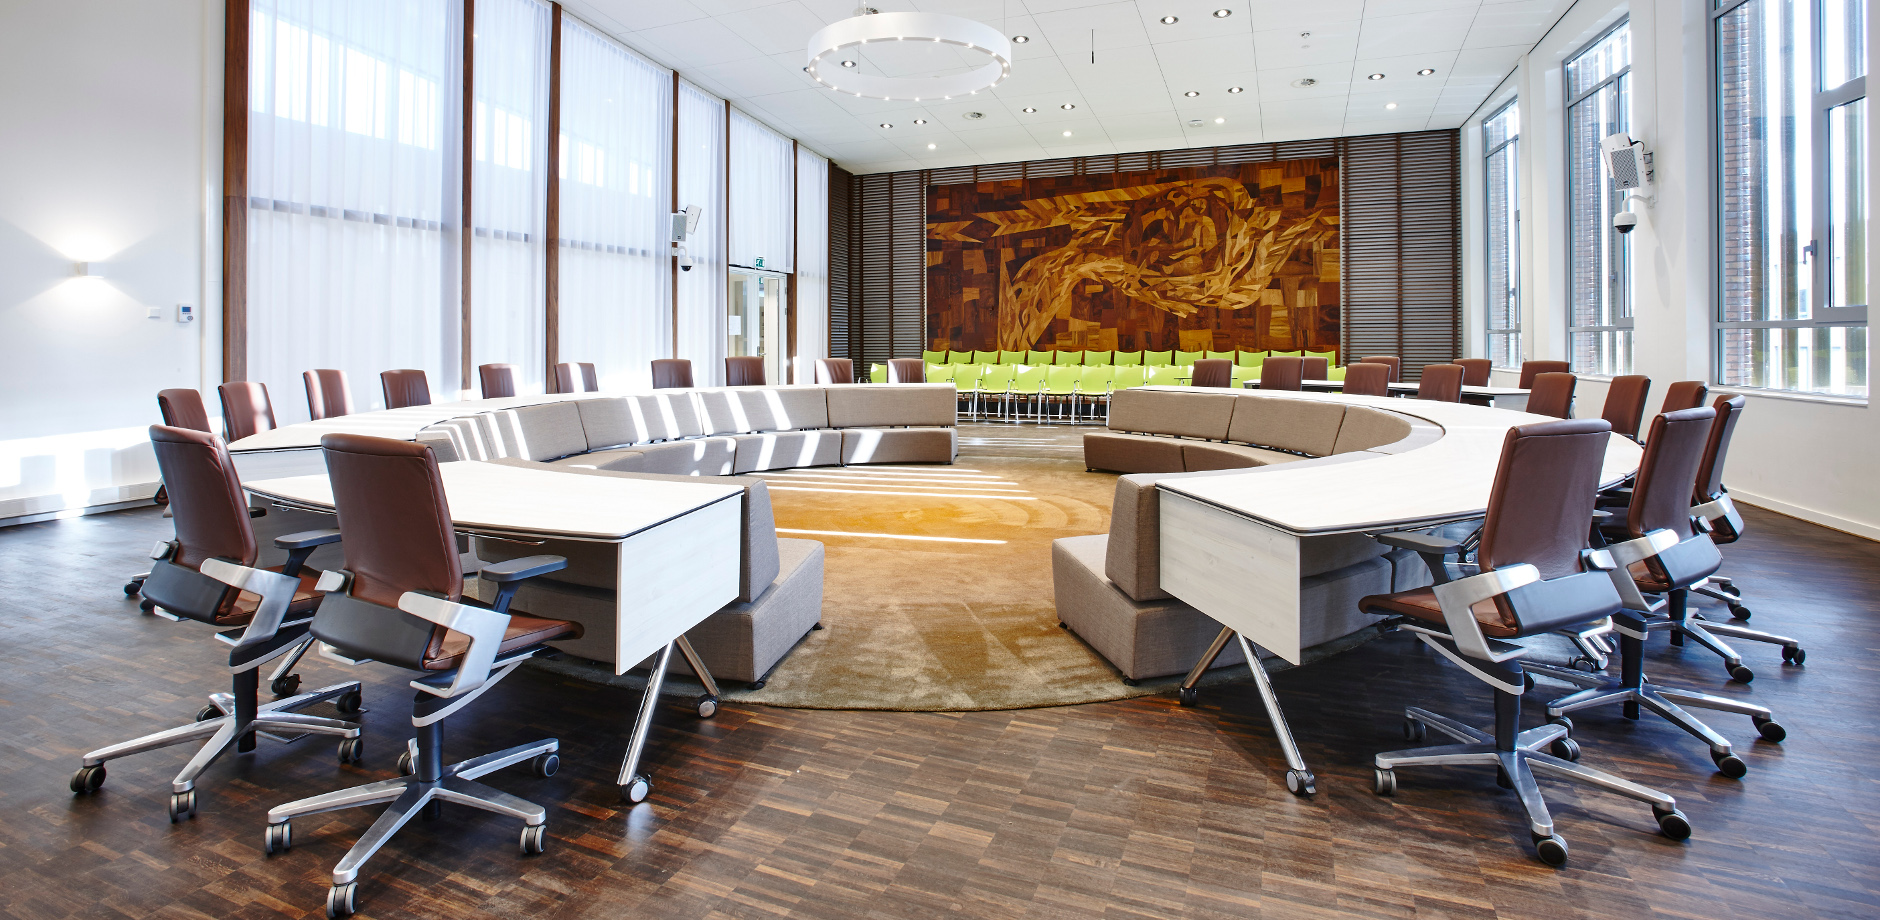 Conference room with ON chairs